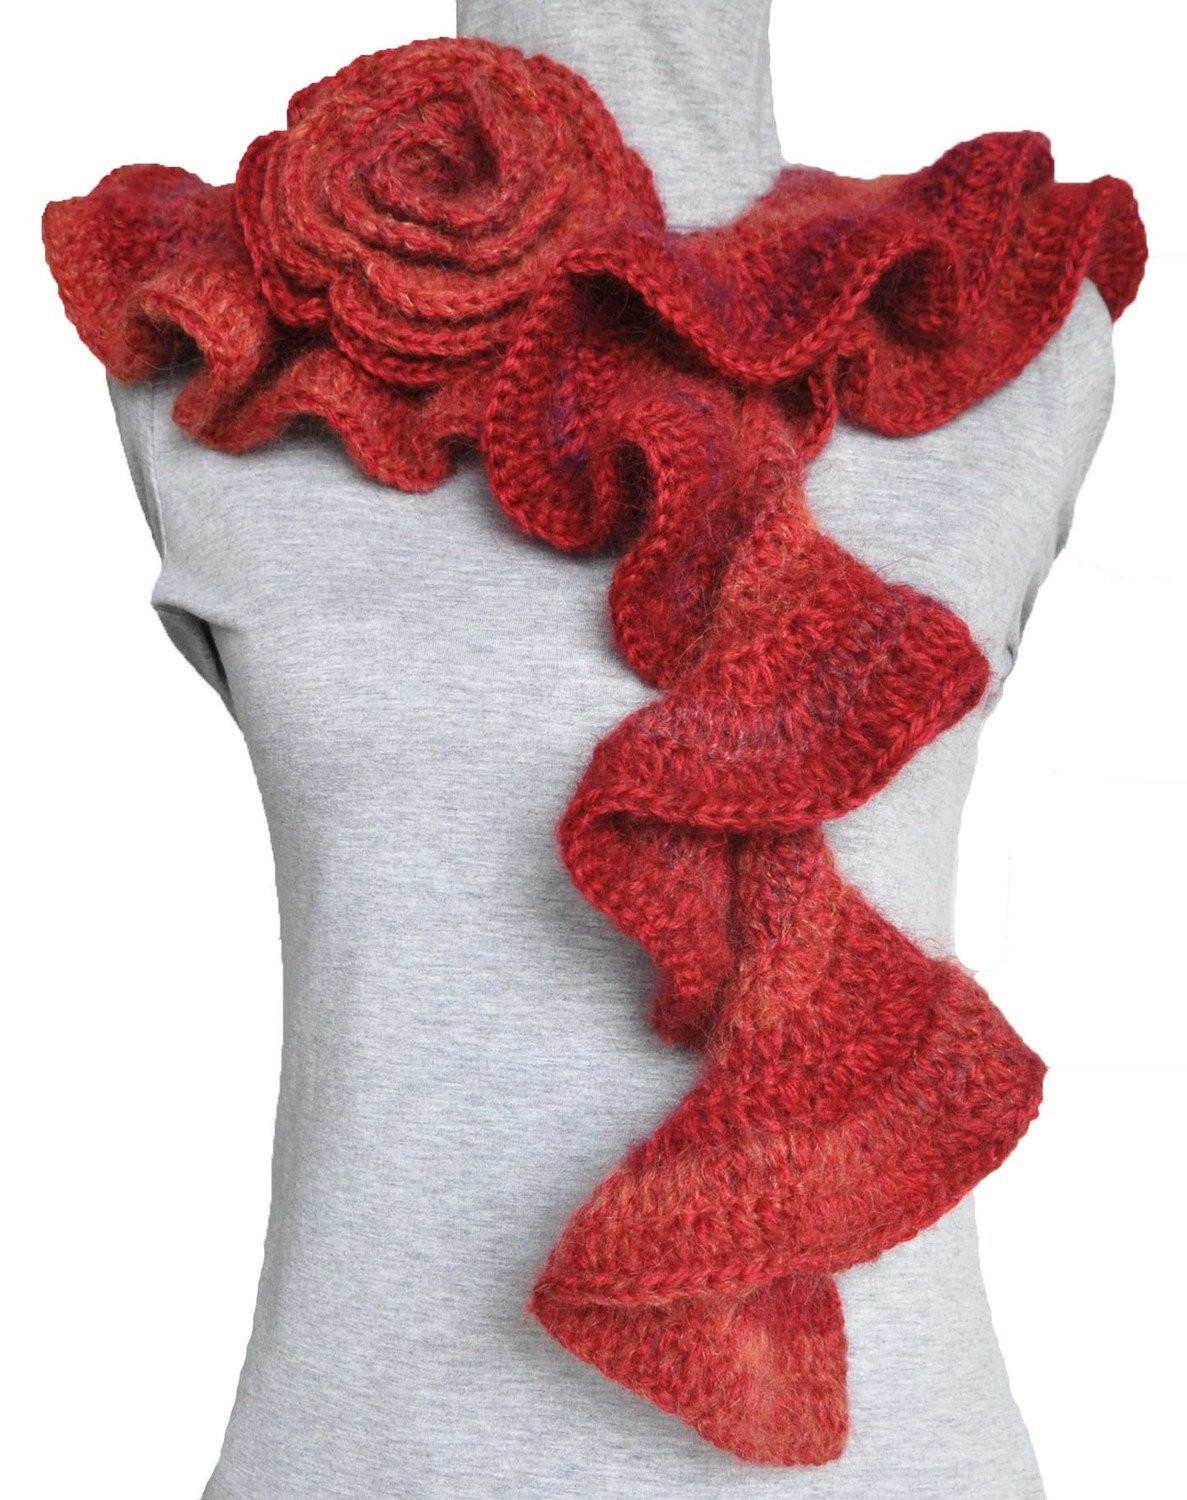 Unique Fire Red Crochet Ruffle and Rose Spiral Scarf Crochet Ruffle Scarf Of Inspirational Firehawke Hooks and Needles Free Pattern Ruffle Scarf Crochet Ruffle Scarf